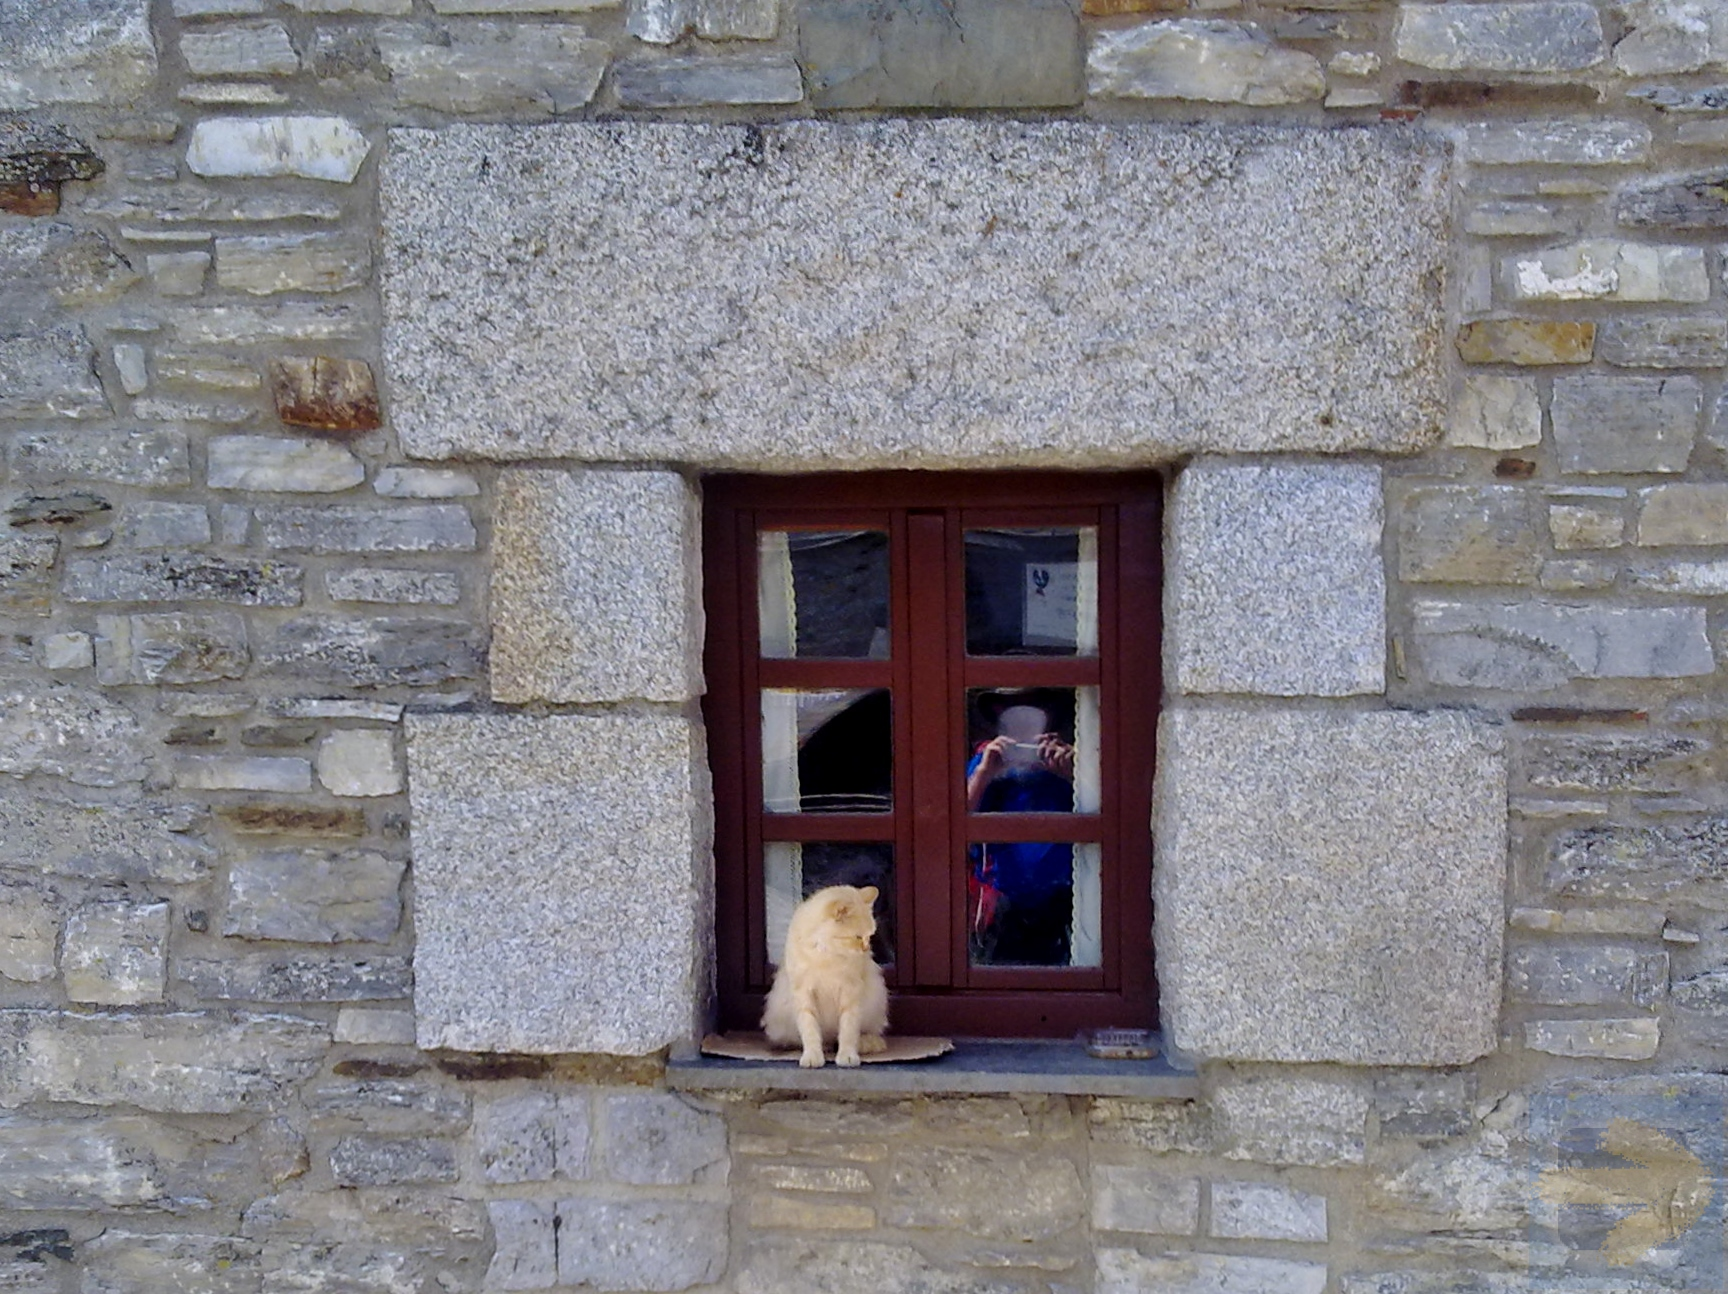 A Cat, a Pilgrim,  a Window and a Toy.